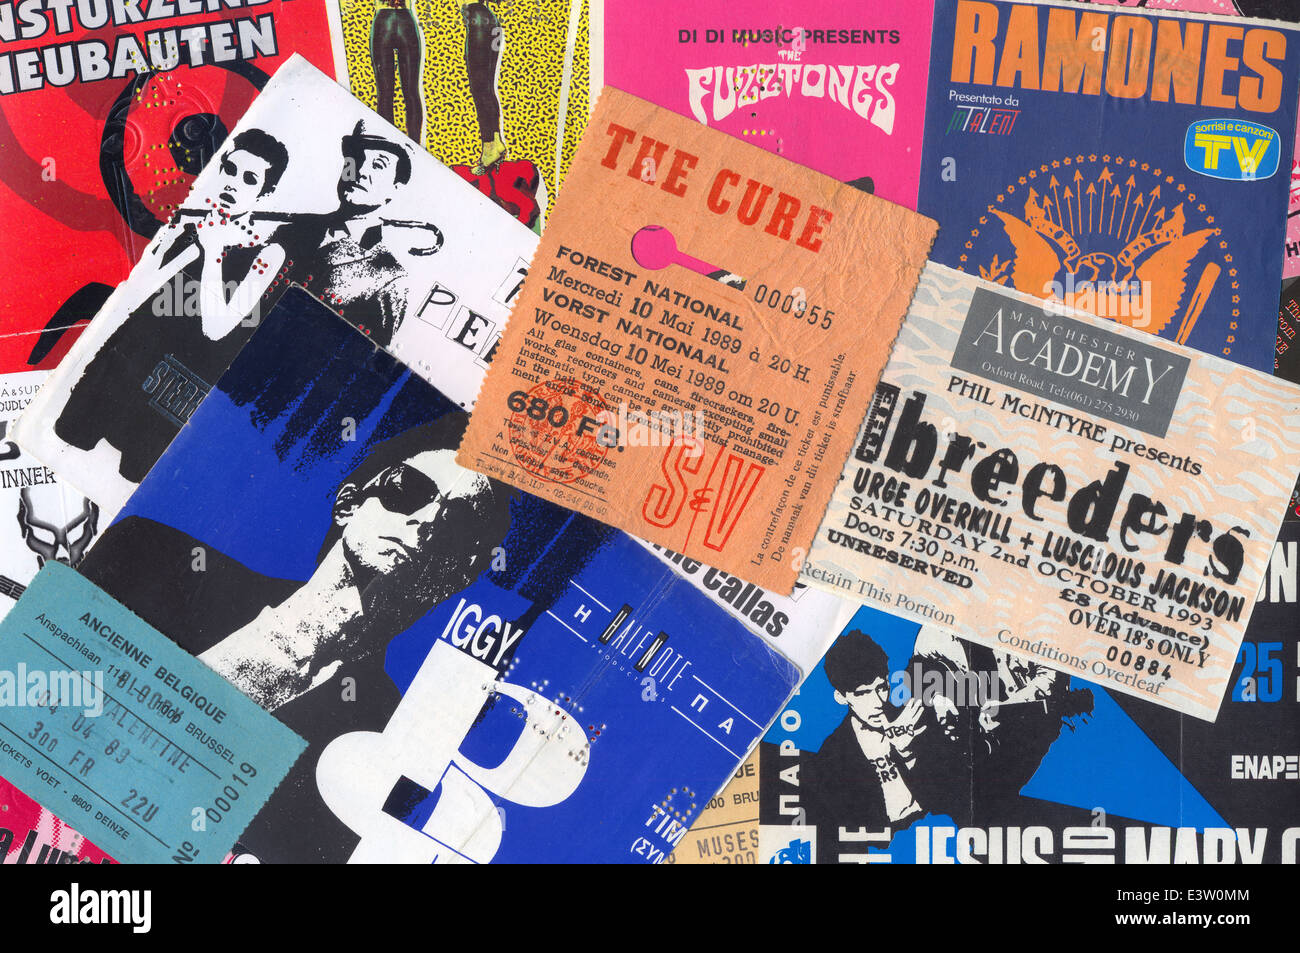 Vintage Concert Ticket Stubs Punk And Alternative Rock Music Memorabilia From The 80s 90s